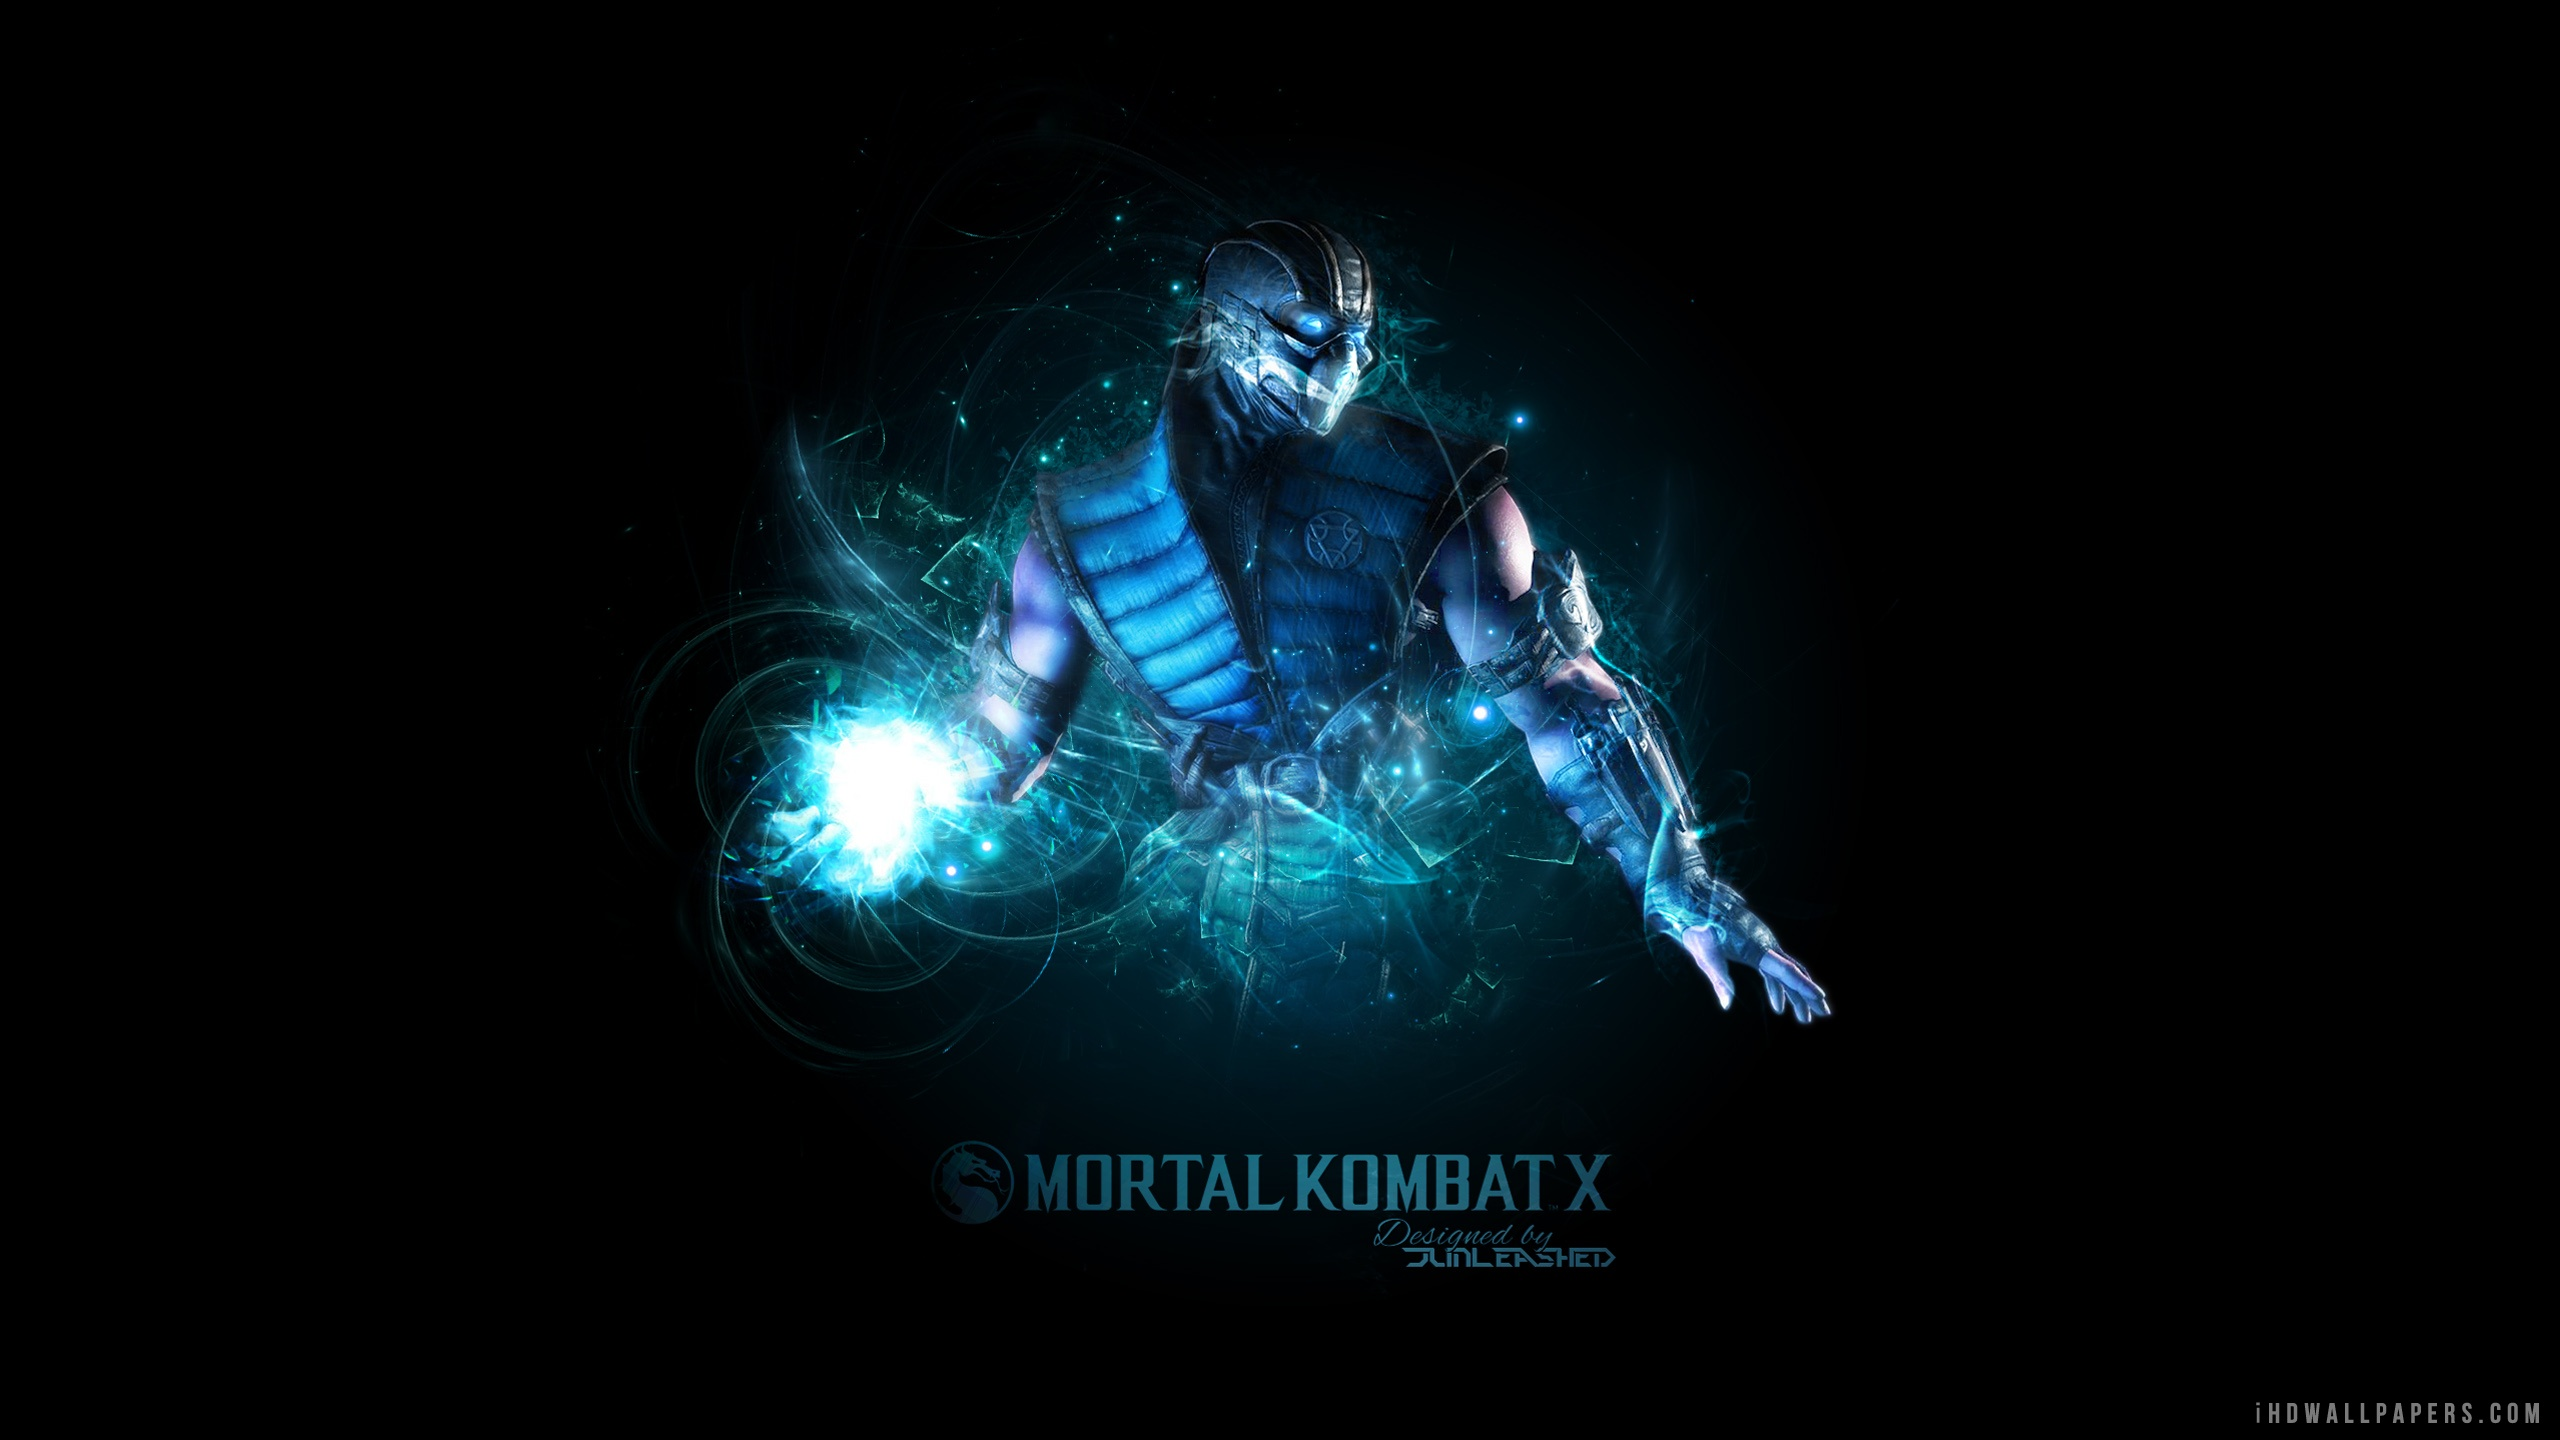 mortal kombat x wallpapers download mortal kombat x wallpapers wide 2560x1440